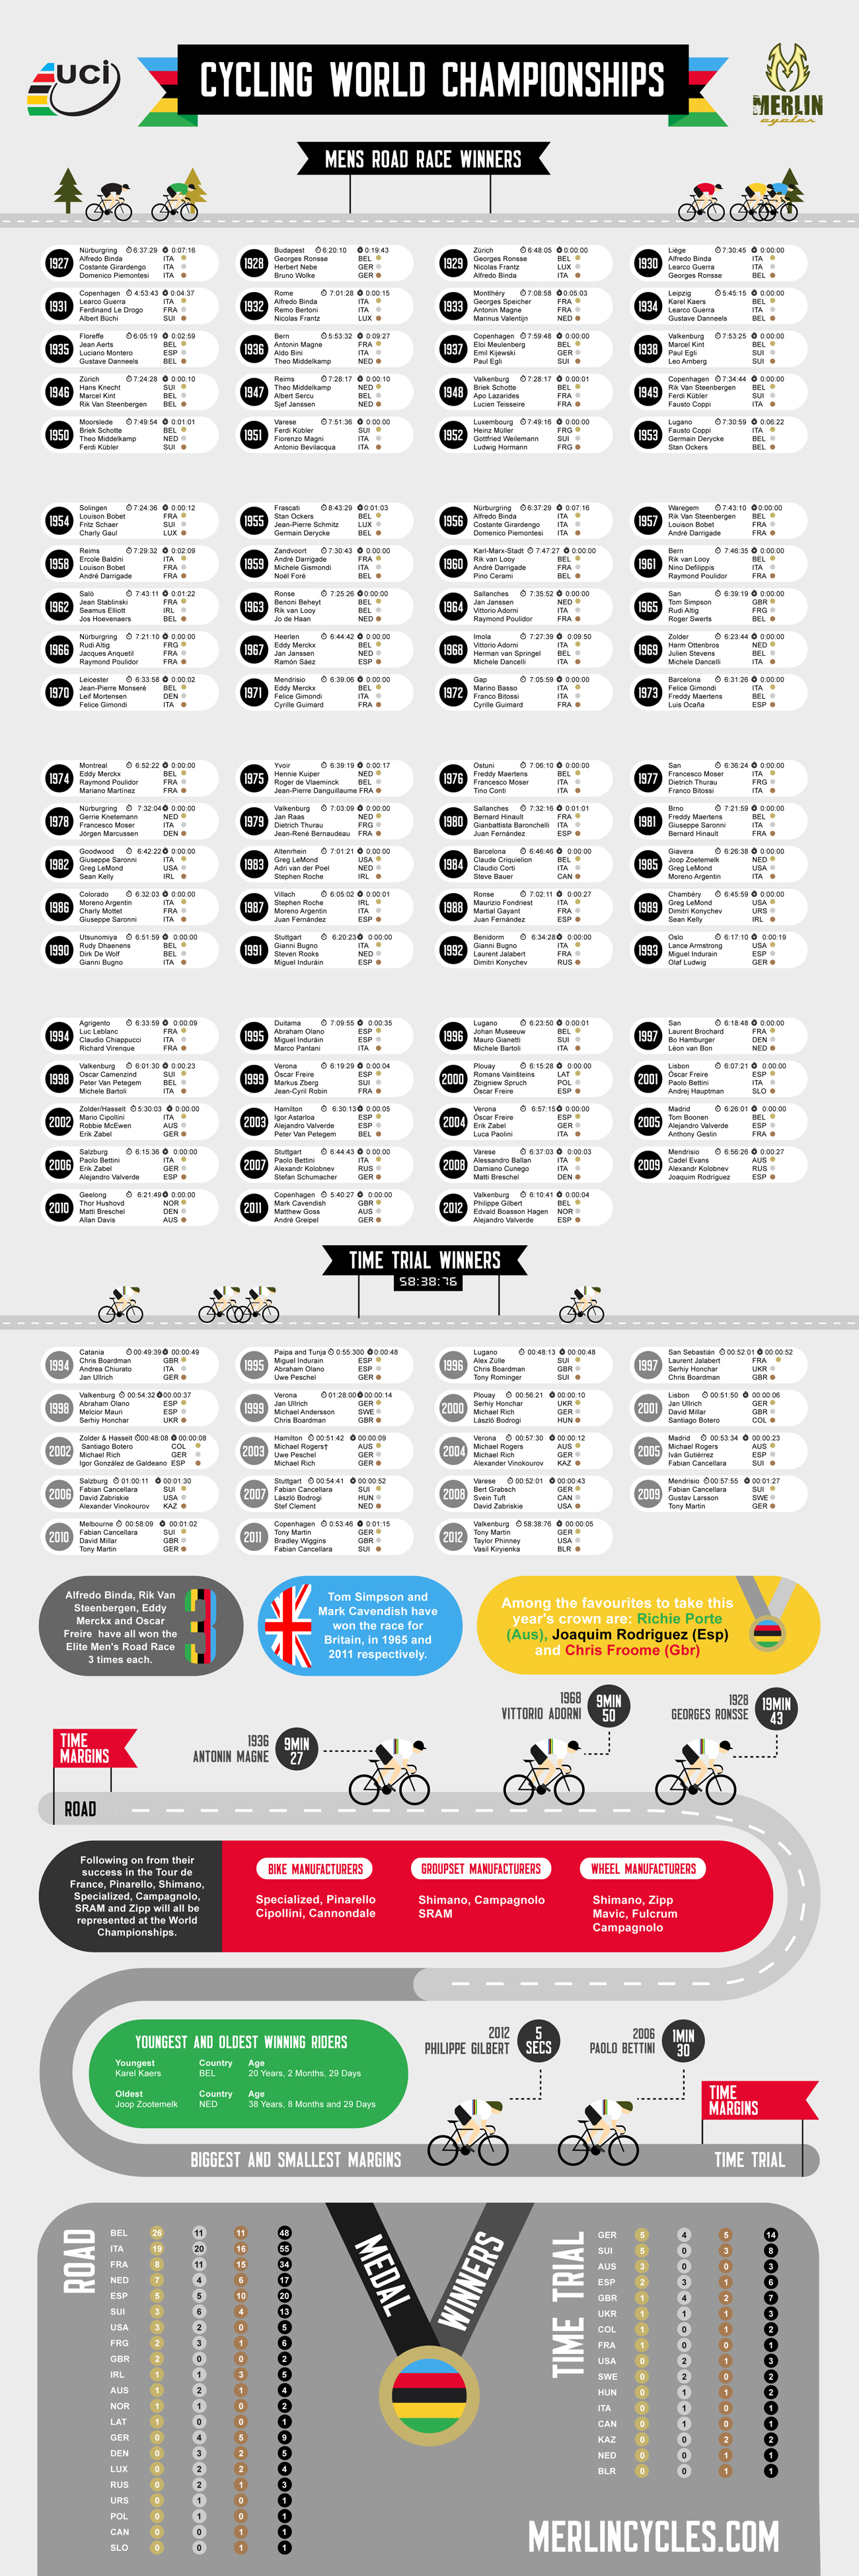 Merlin Cycles - World Championships 2013 Infographic